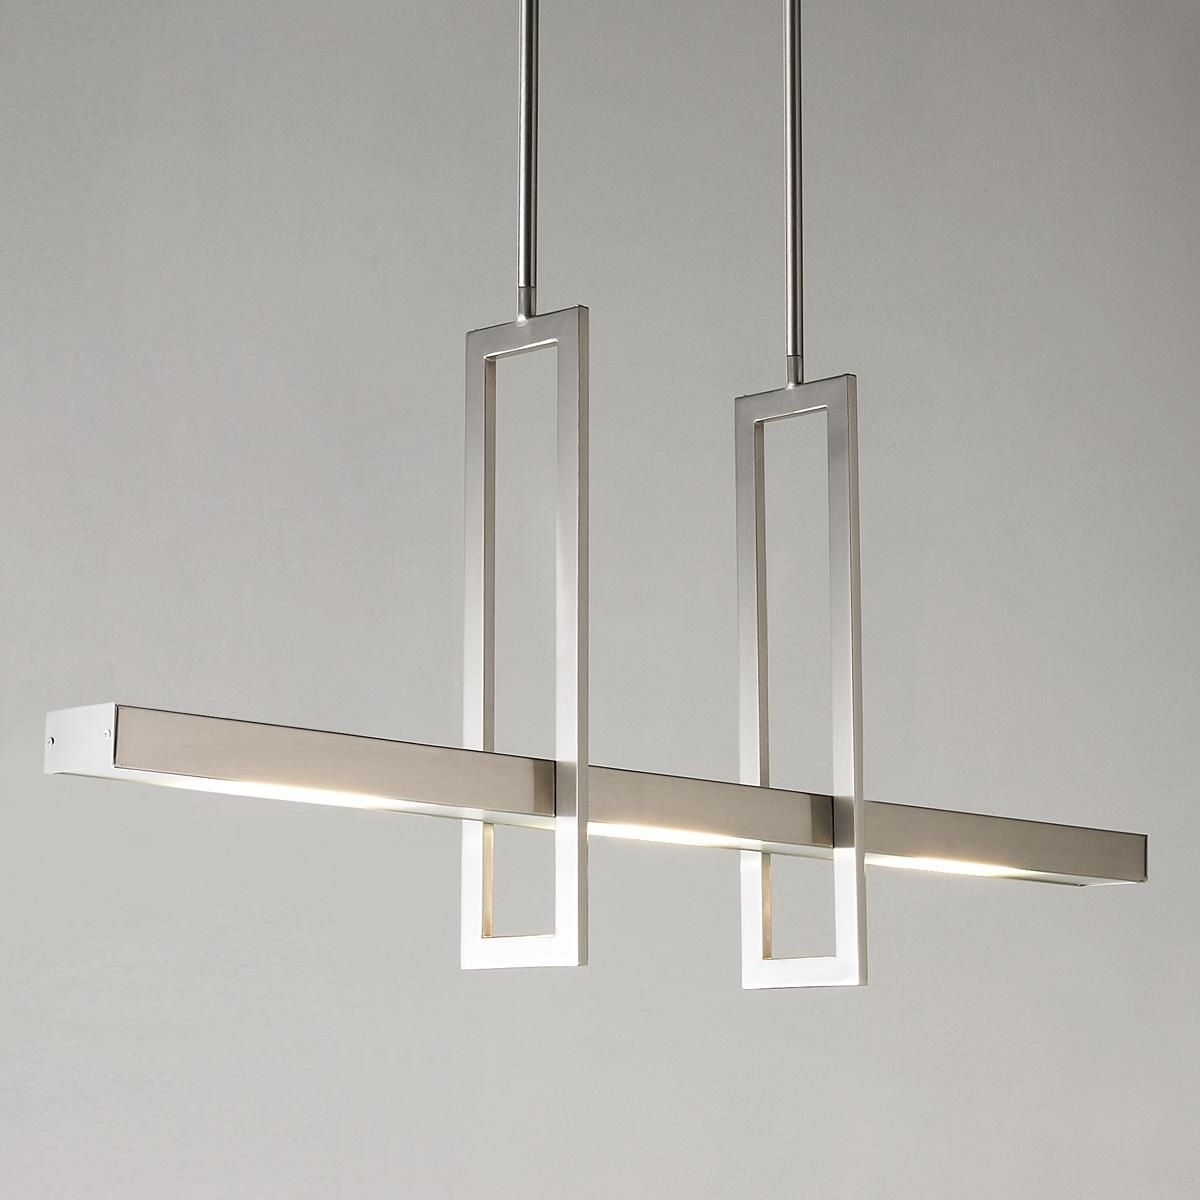 Modern Chandeliers Regarding Most Up To Date Energy Efficient Modern Balance Beam Led Linear Chandelier (View 12 of 20)